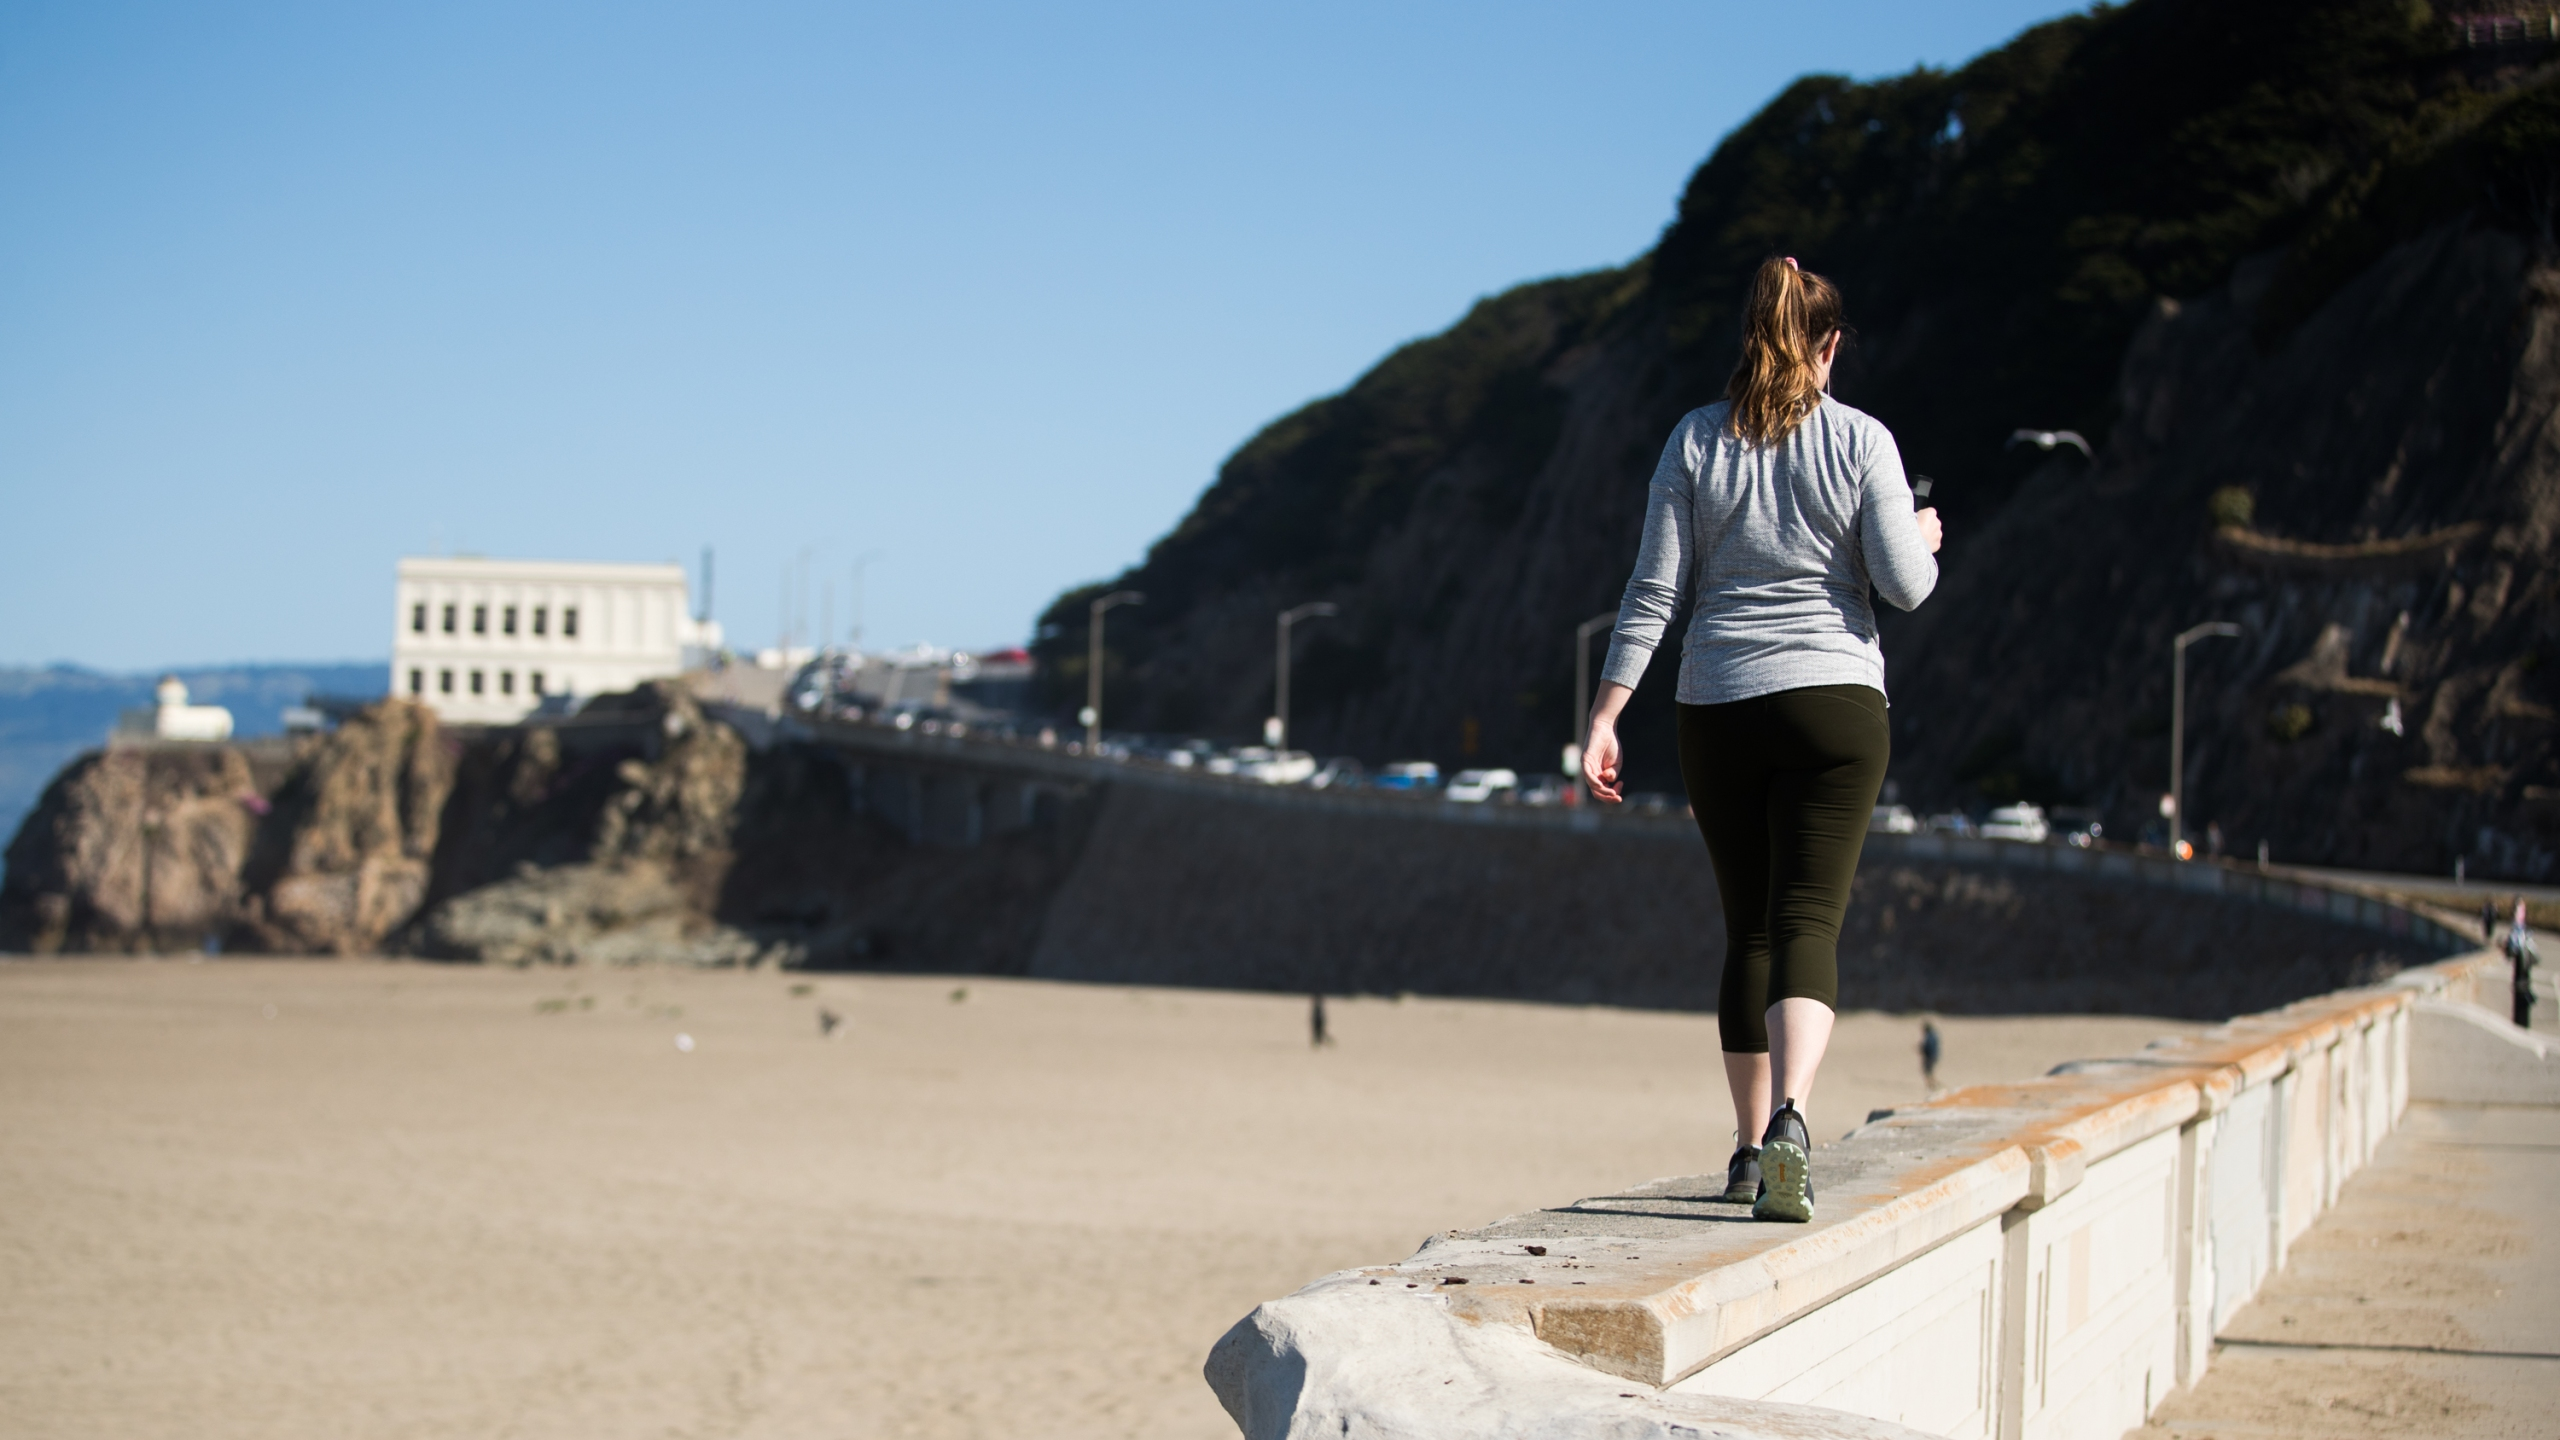 A woman walks on a beach path during the coronavirus pandemic on May 3, 2020 in San Francisco. (Rich Fury/Getty Images)